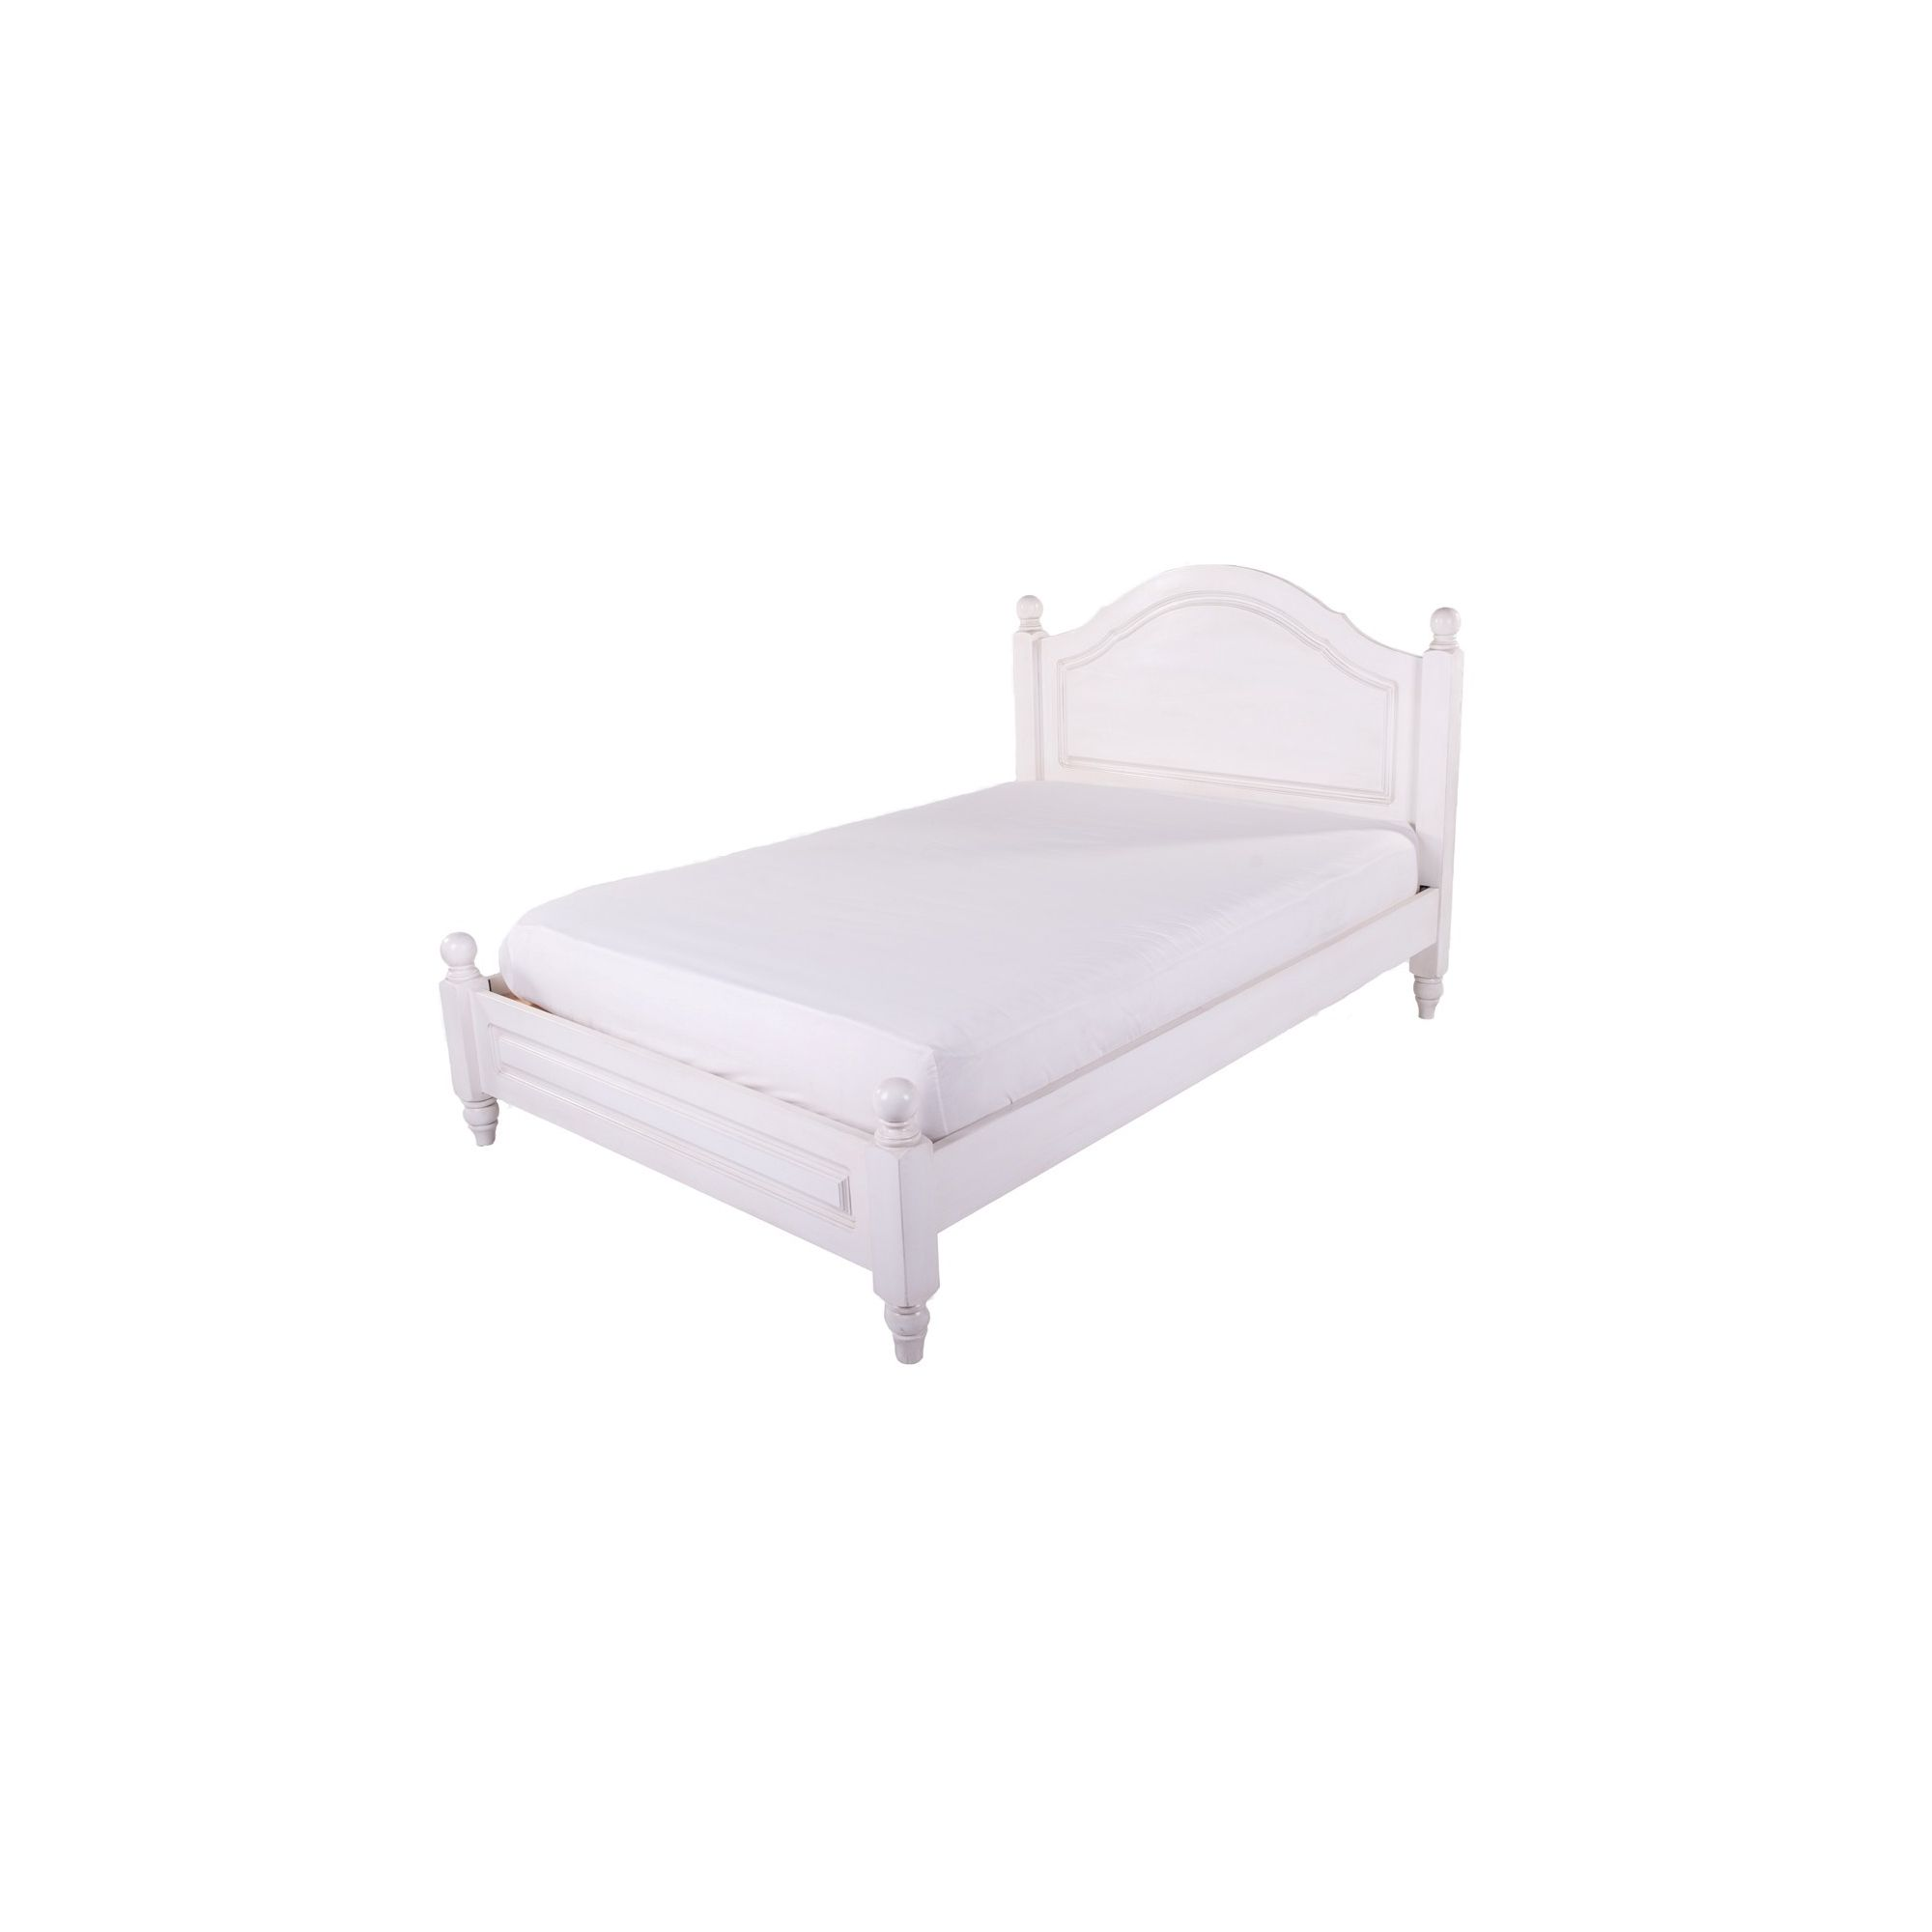 Thorndon Brittany Bed Frame - Single at Tescos Direct